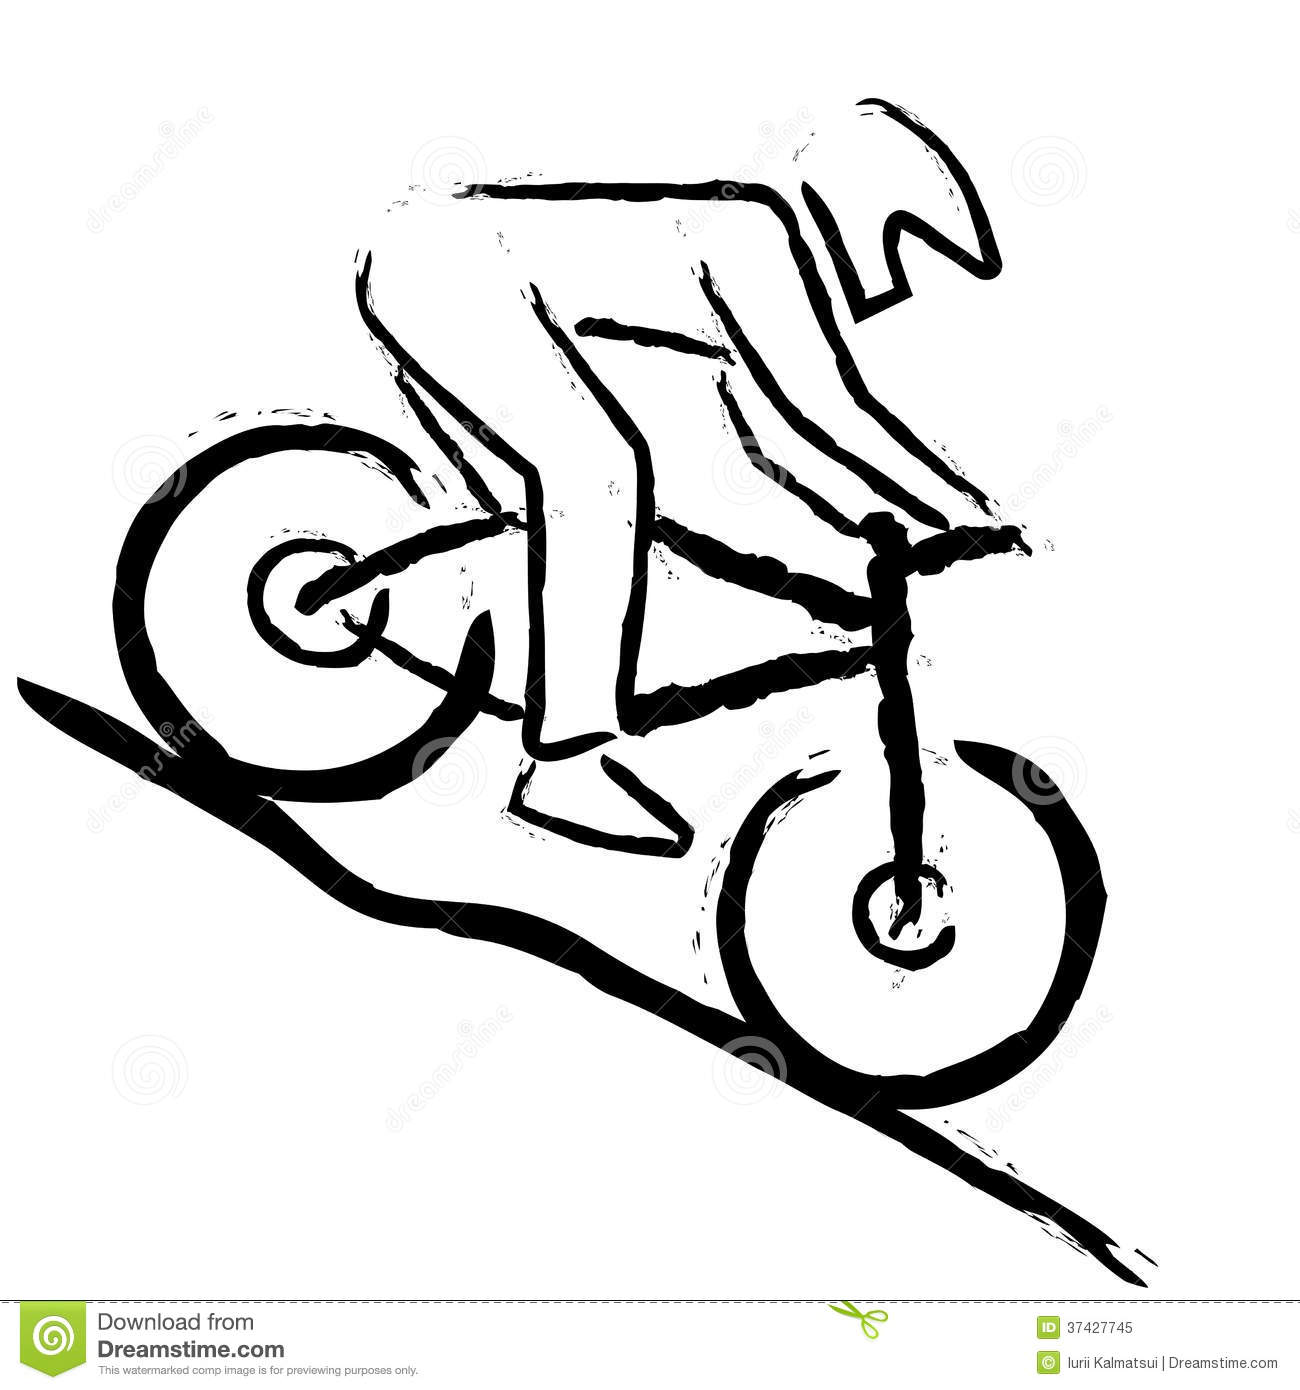 Illustration of stylized mountain biker which is riding downhill.